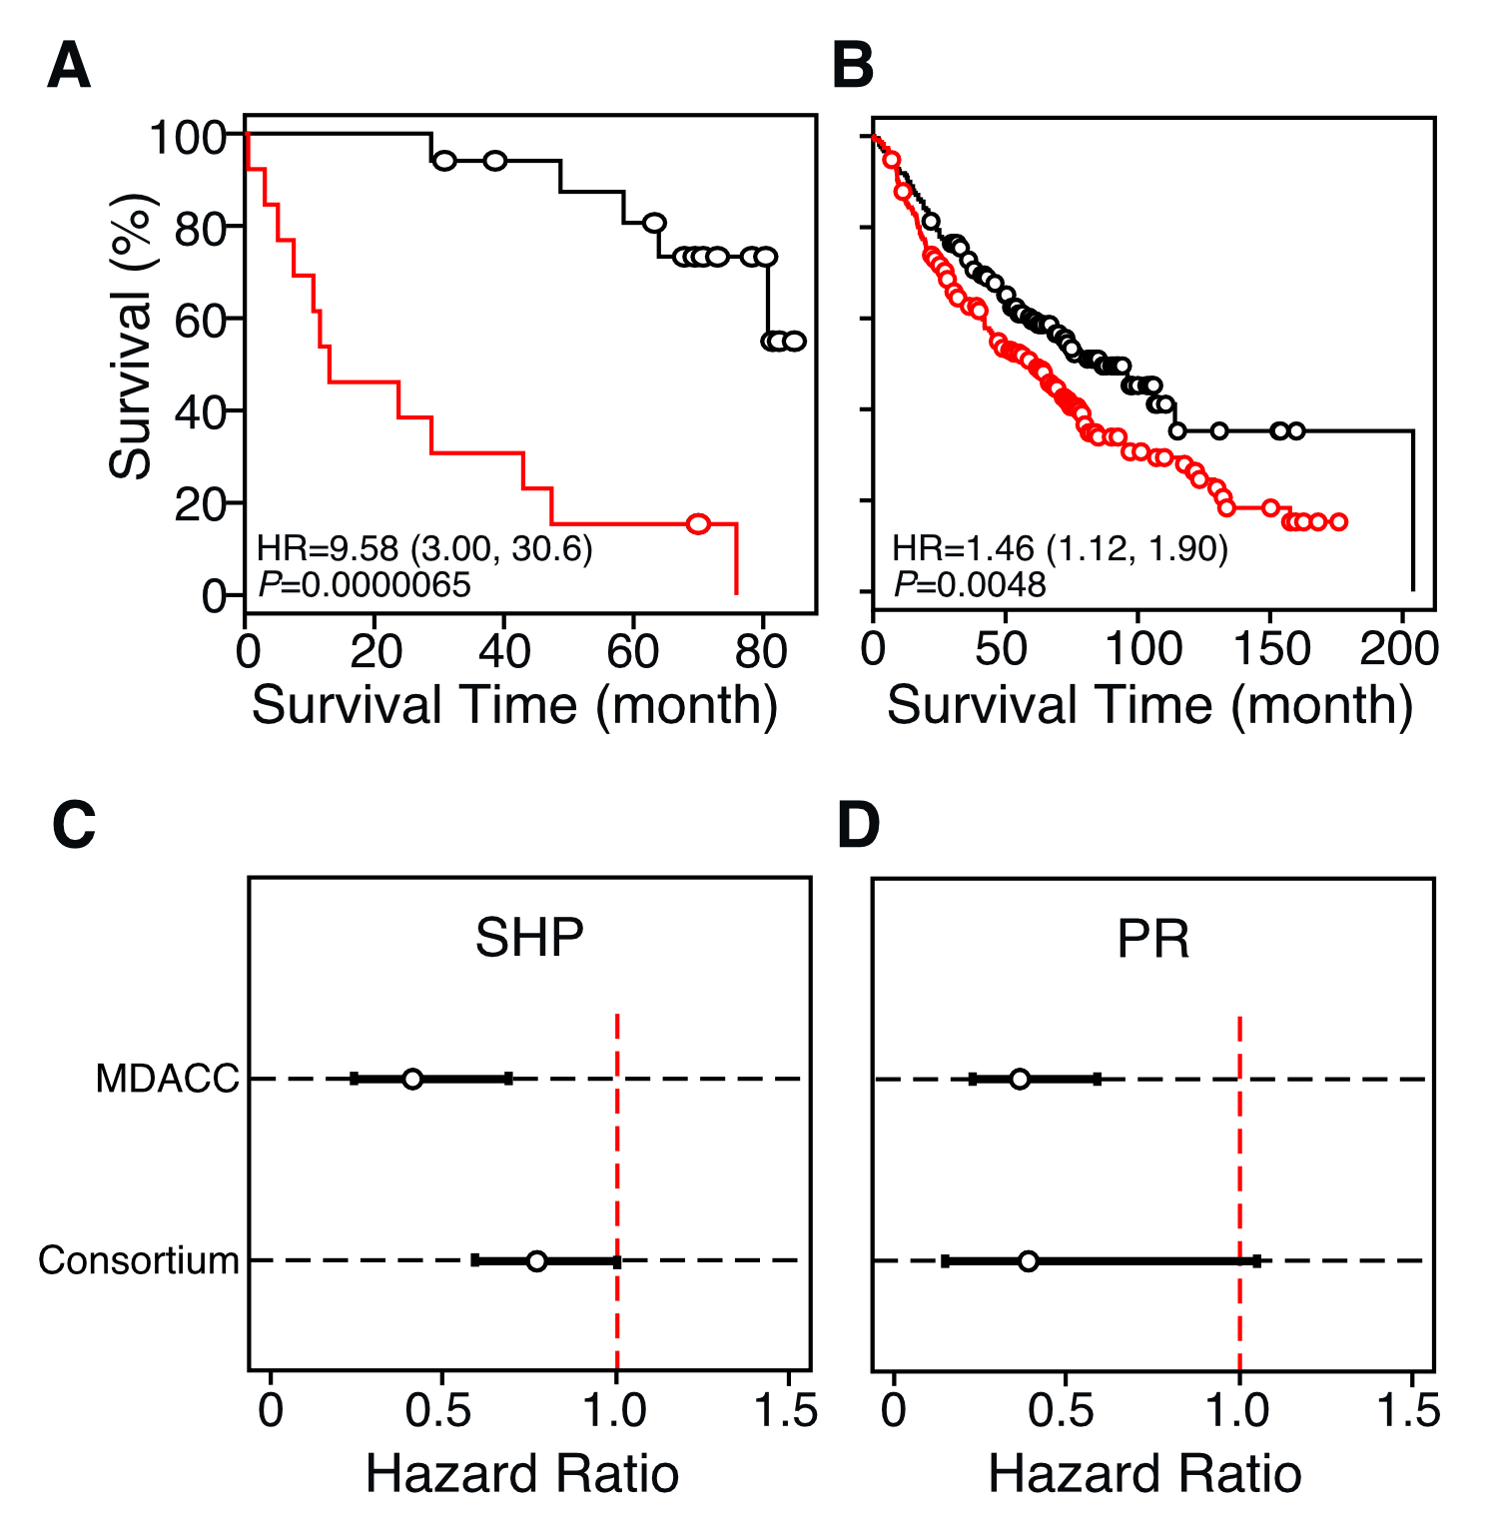 Identification of single NR gene biomarkers for lung cancer prognosis.